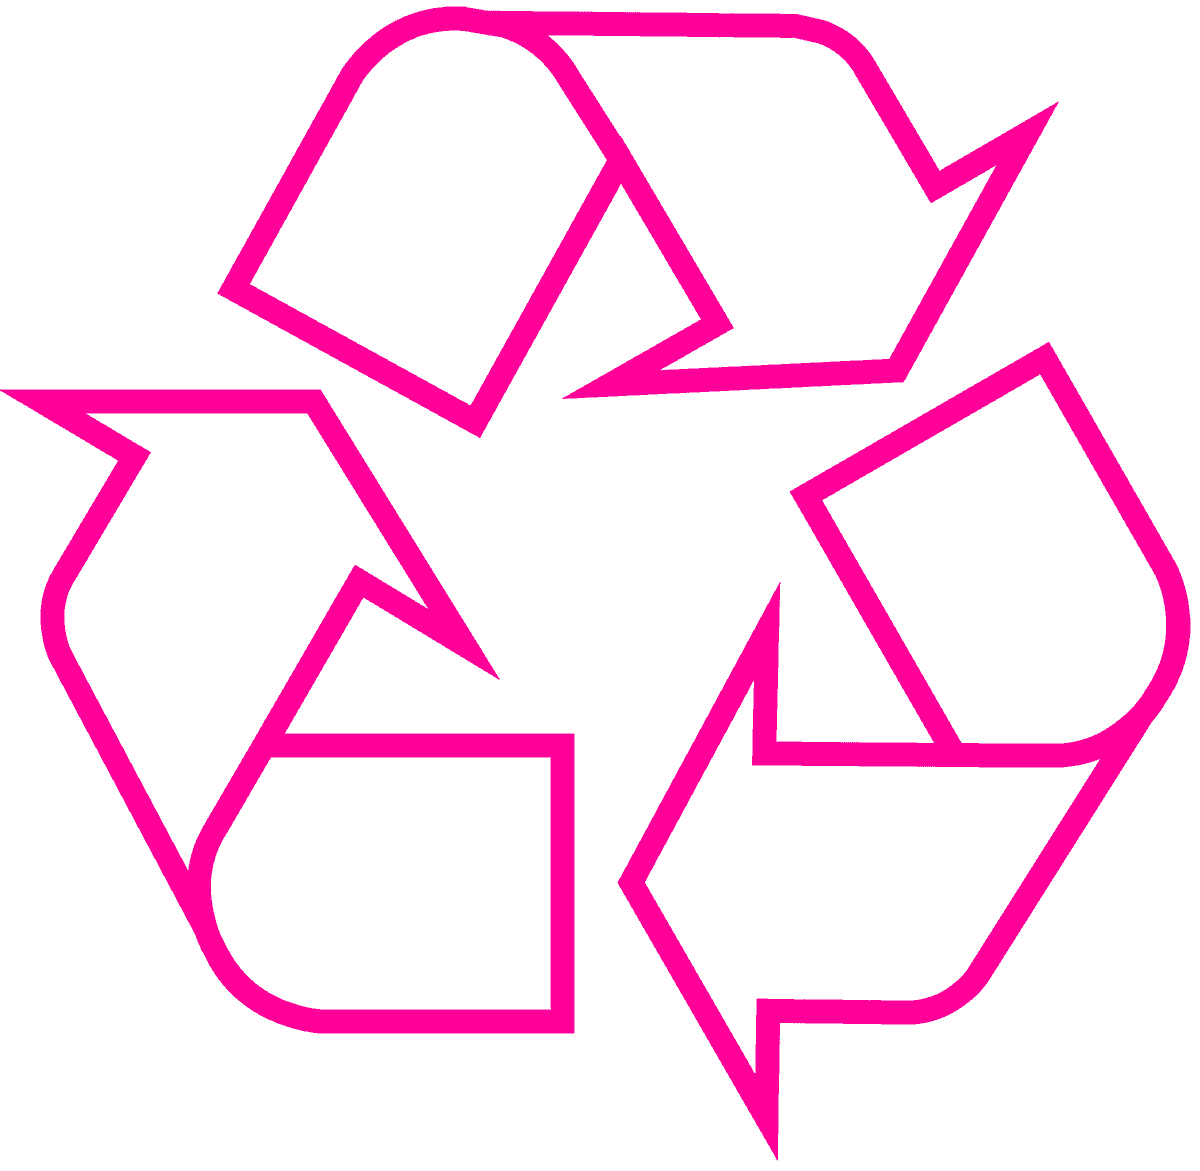 recycling-symbol-icon-outline-magenta